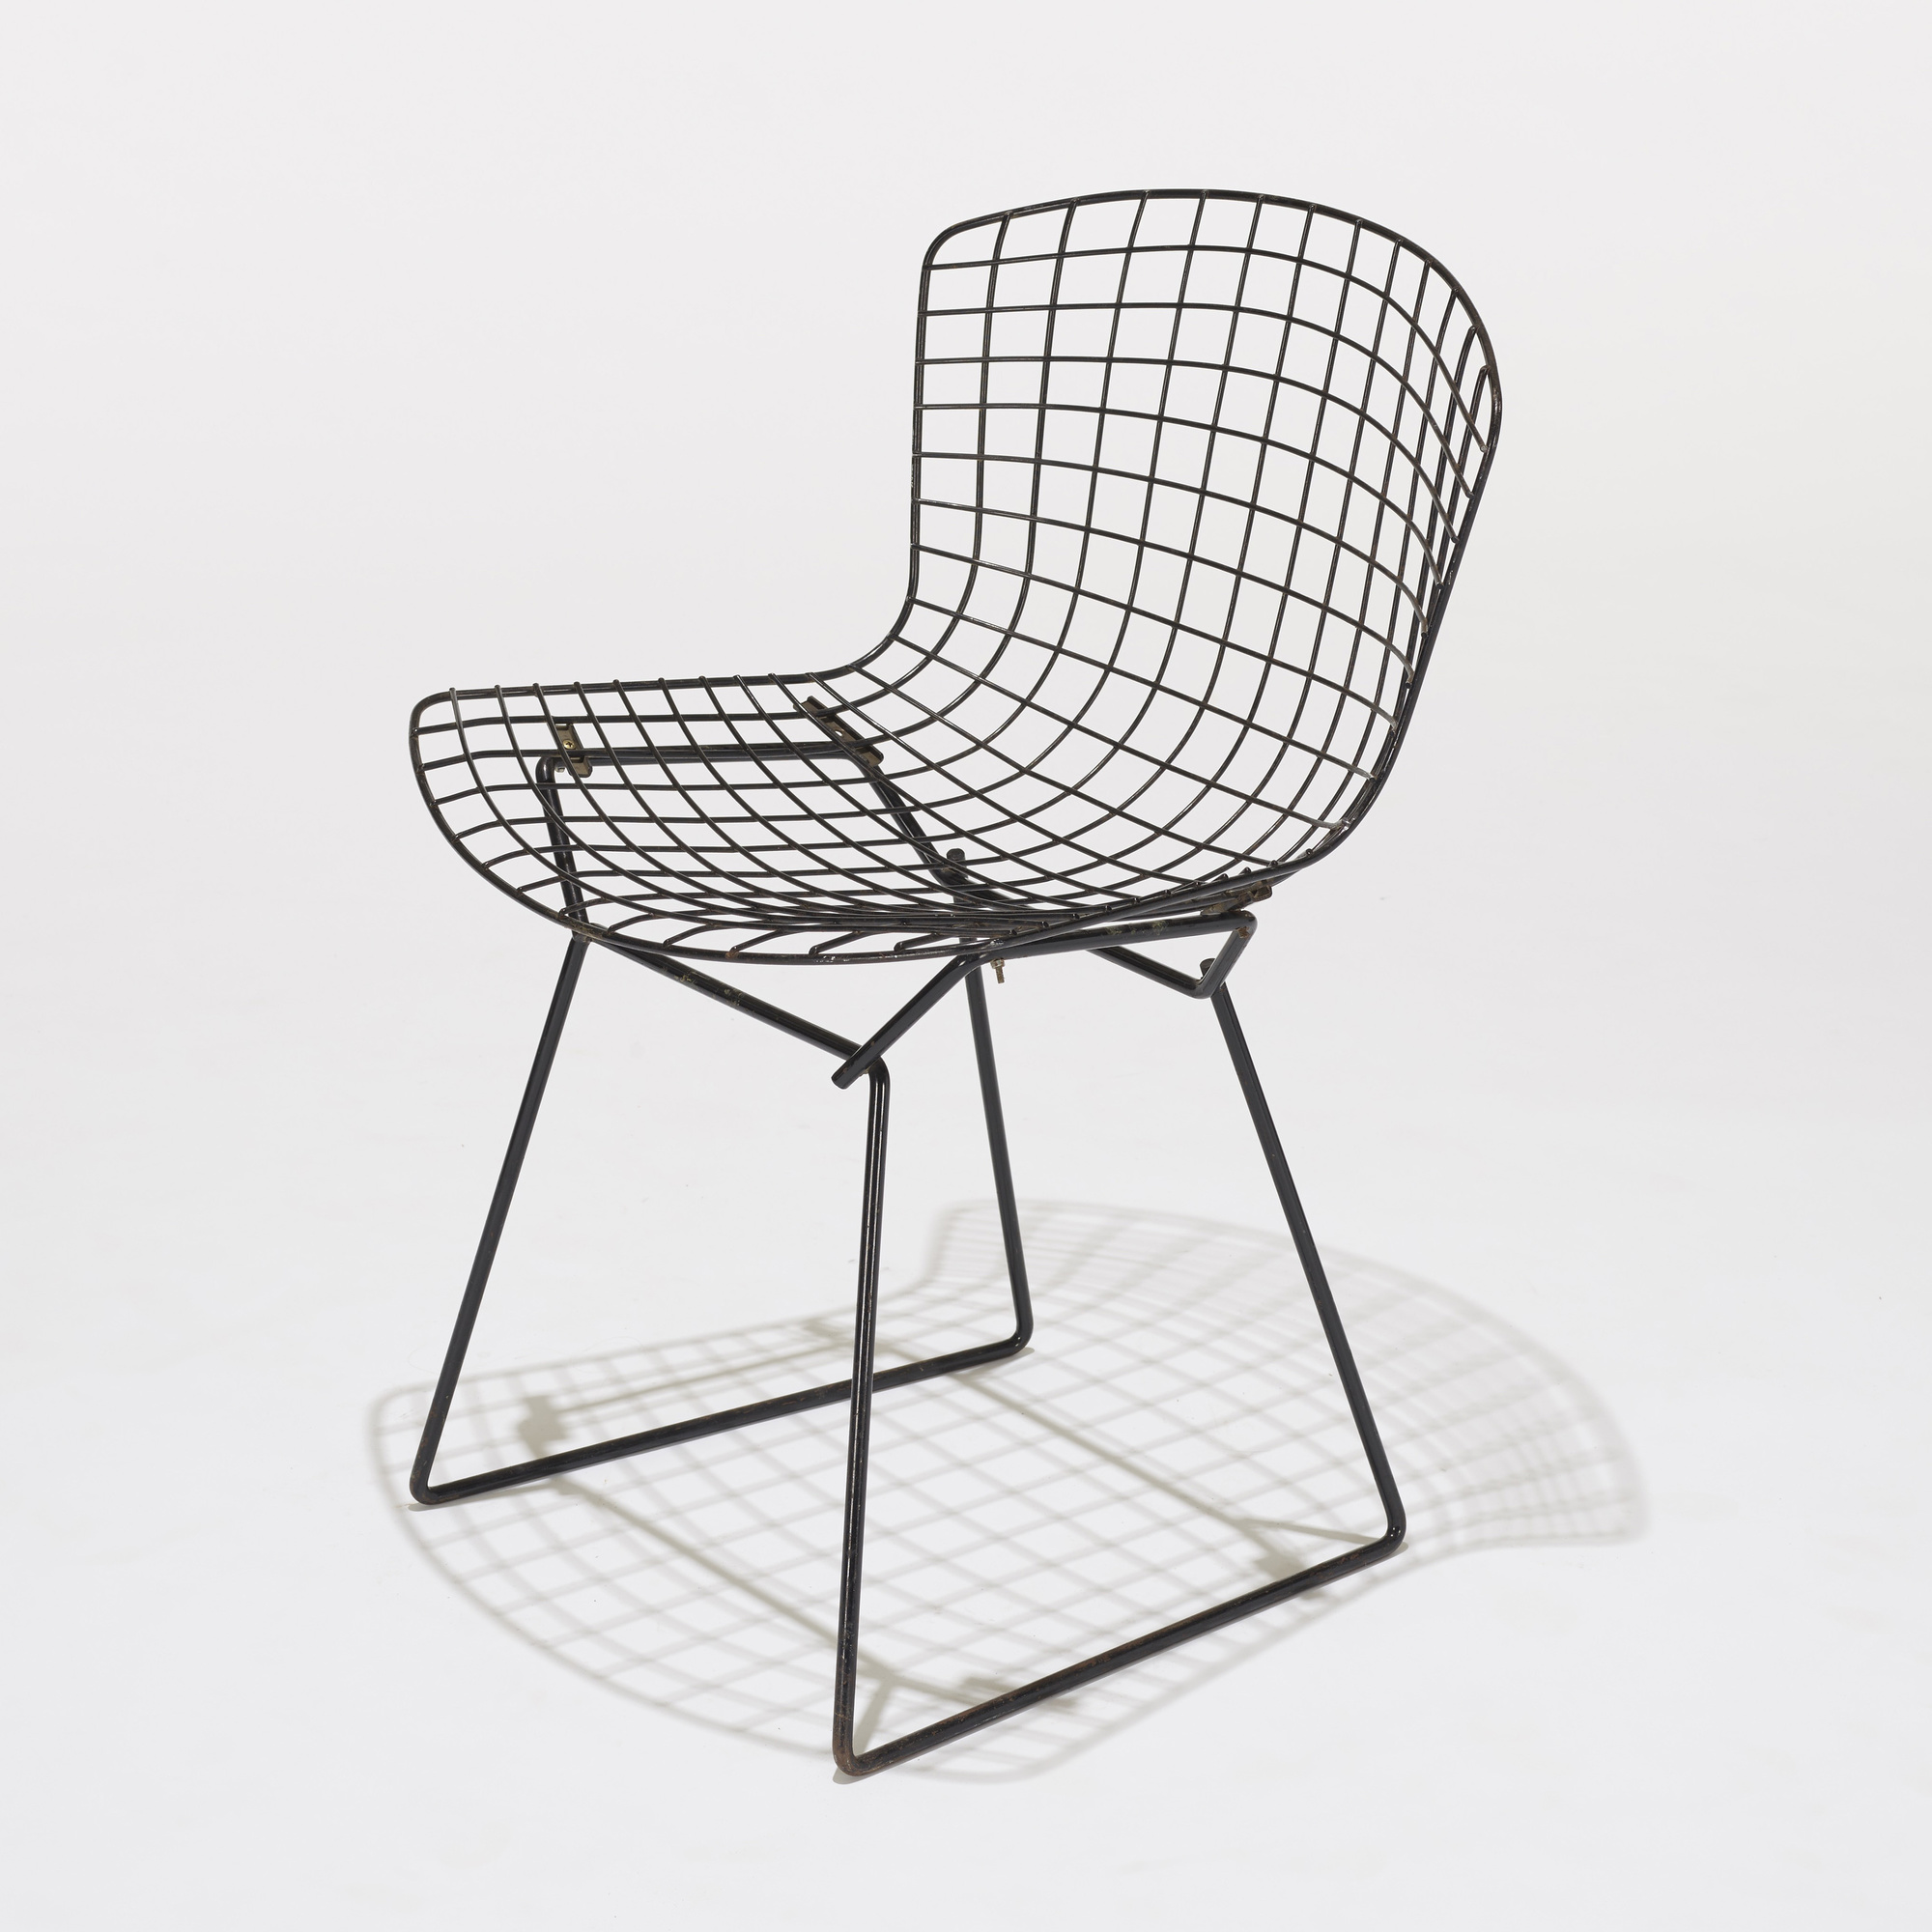 223: Harry Bertoia / chair (3 of 3)